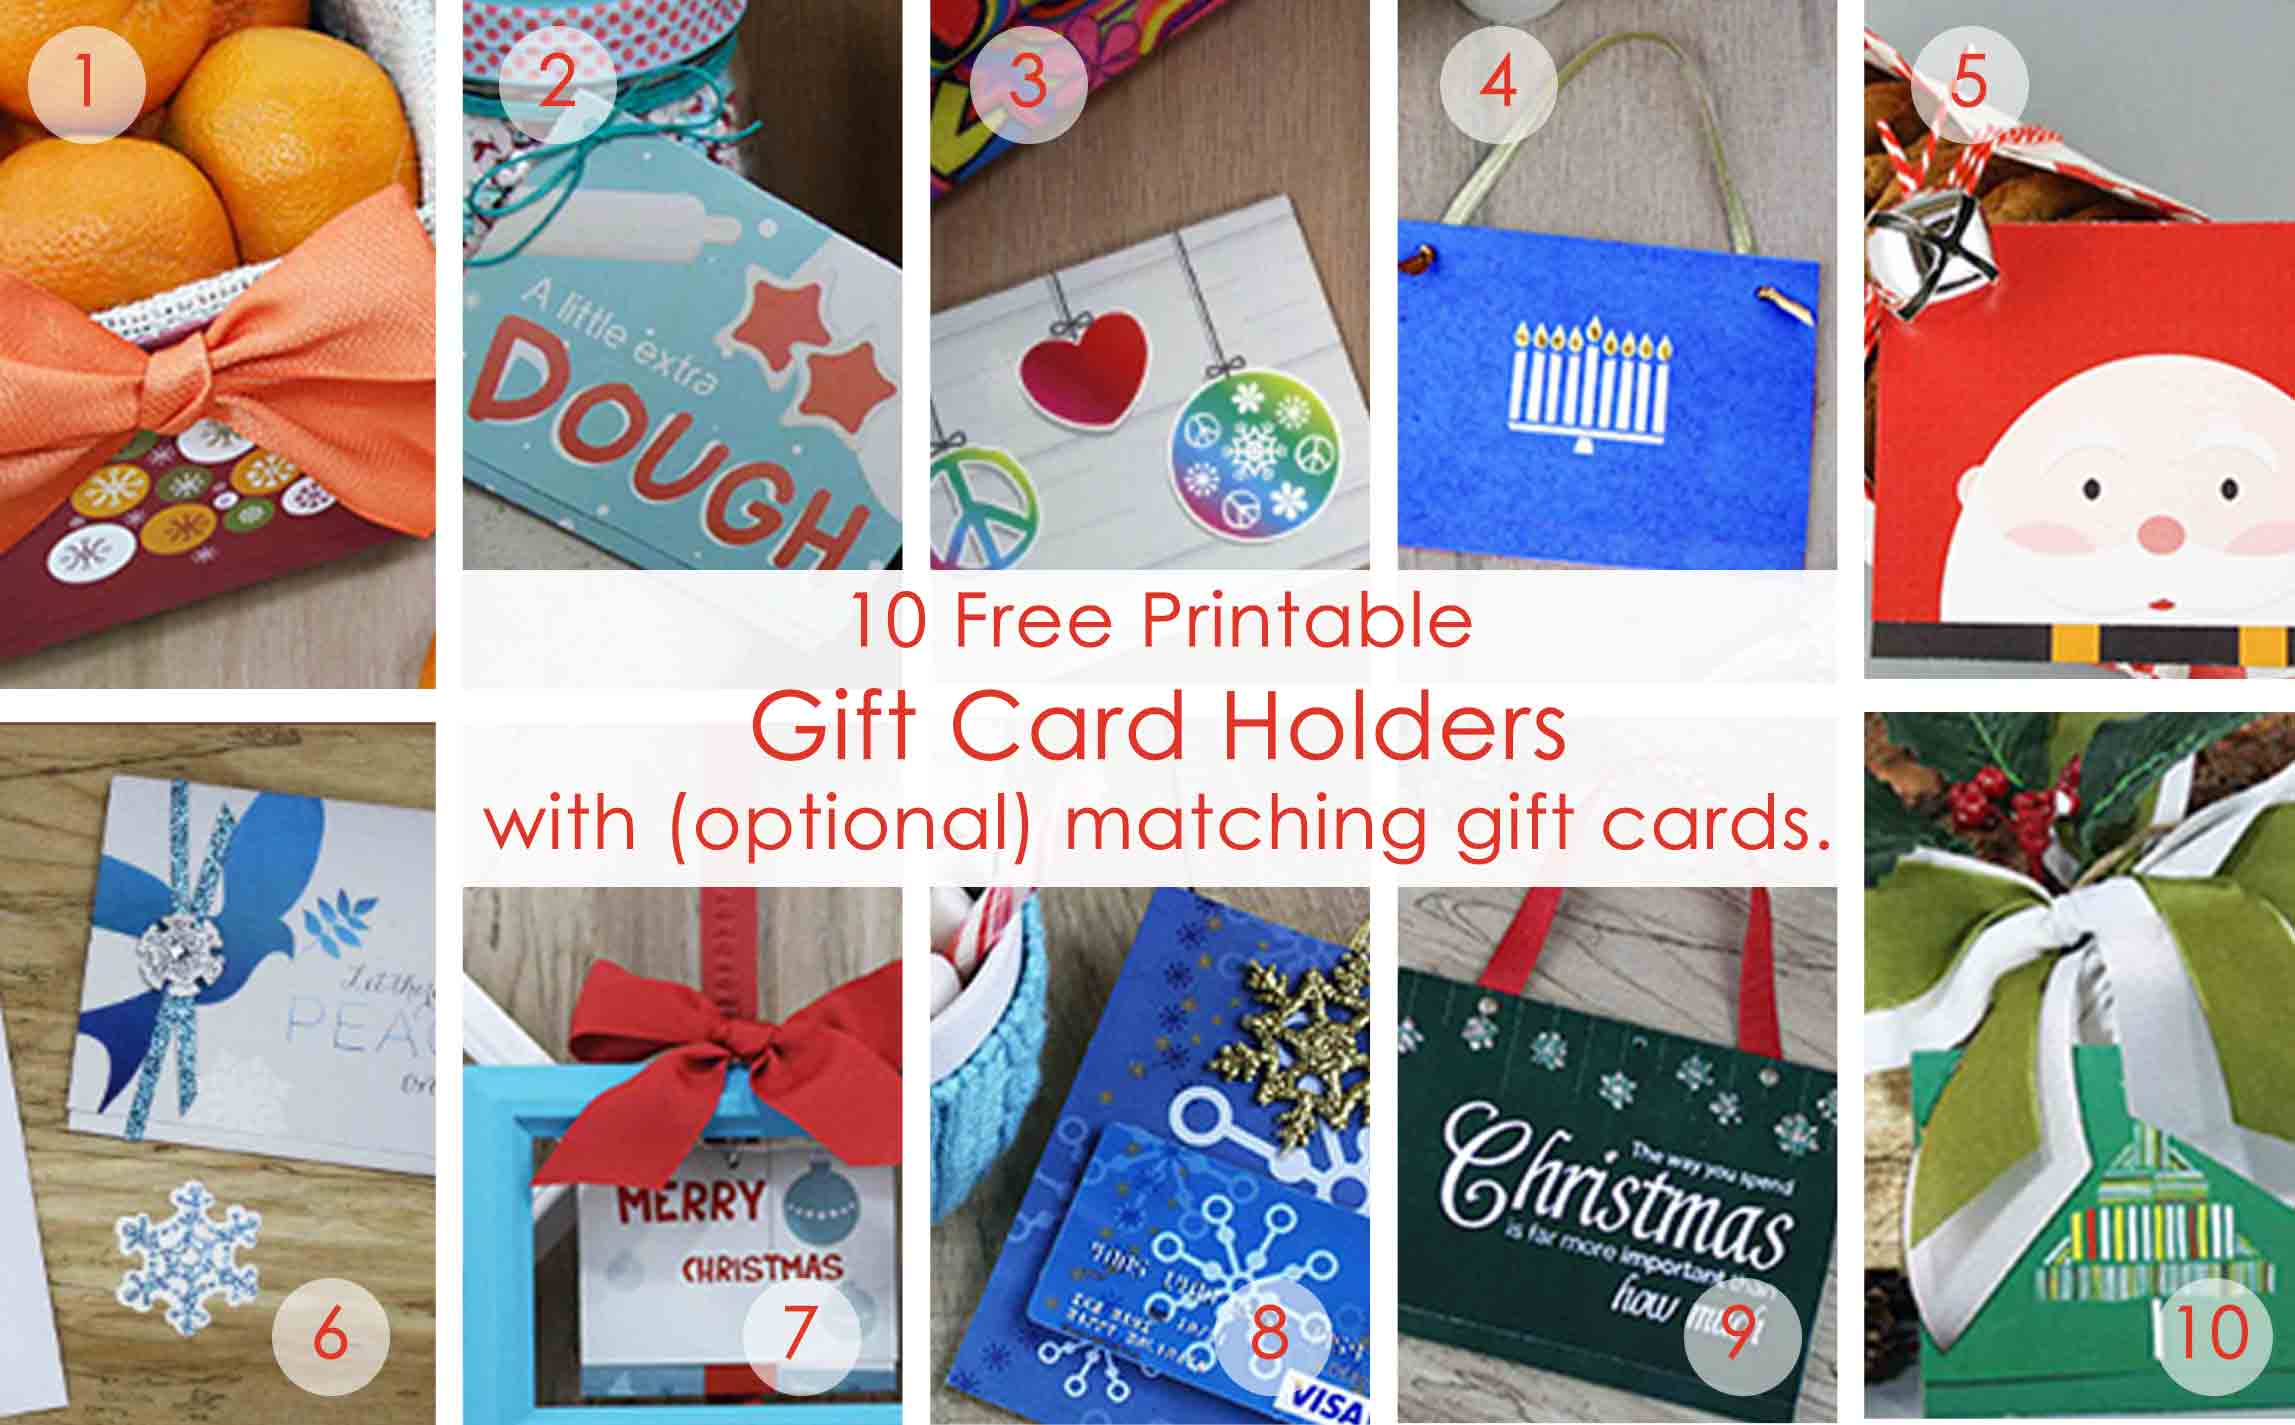 OVER 50 Printable Gift Card Holders For The Holidays  Personalized Gift Certificates Template Free